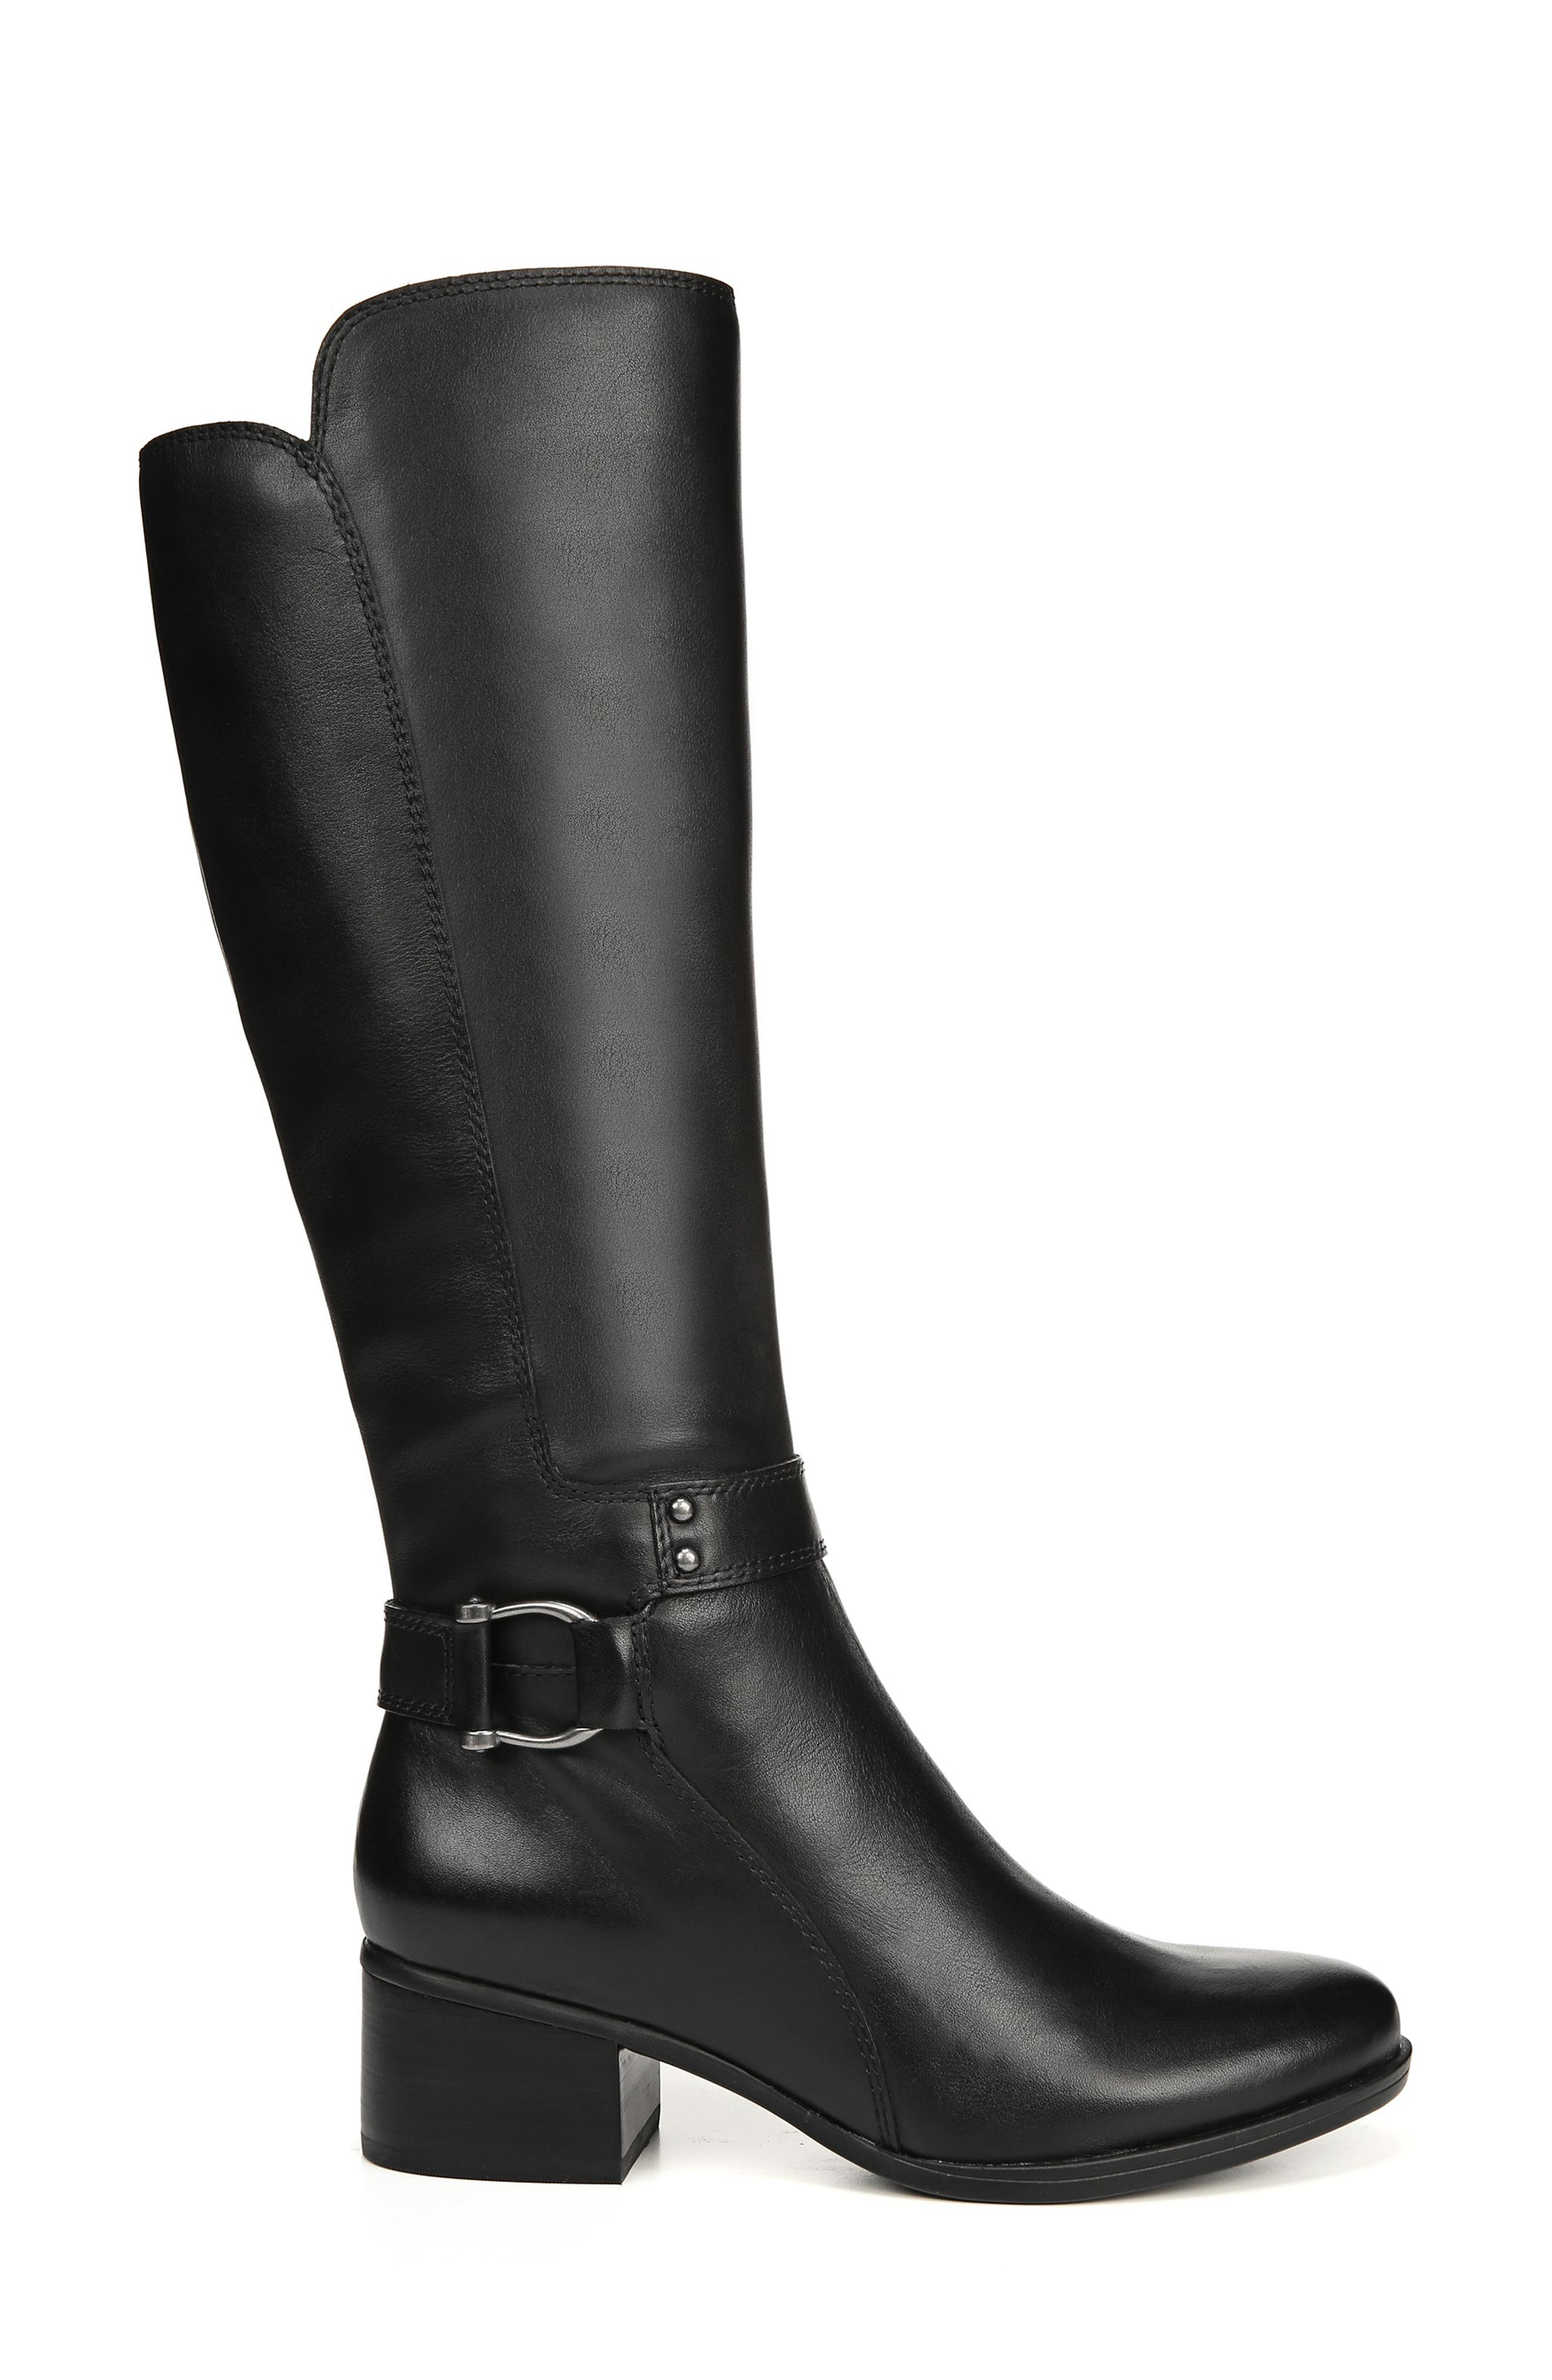 NATURALIZER, Dane Knee High Riding Boot, Alternate thumbnail 3, color, BLACK LEATHER